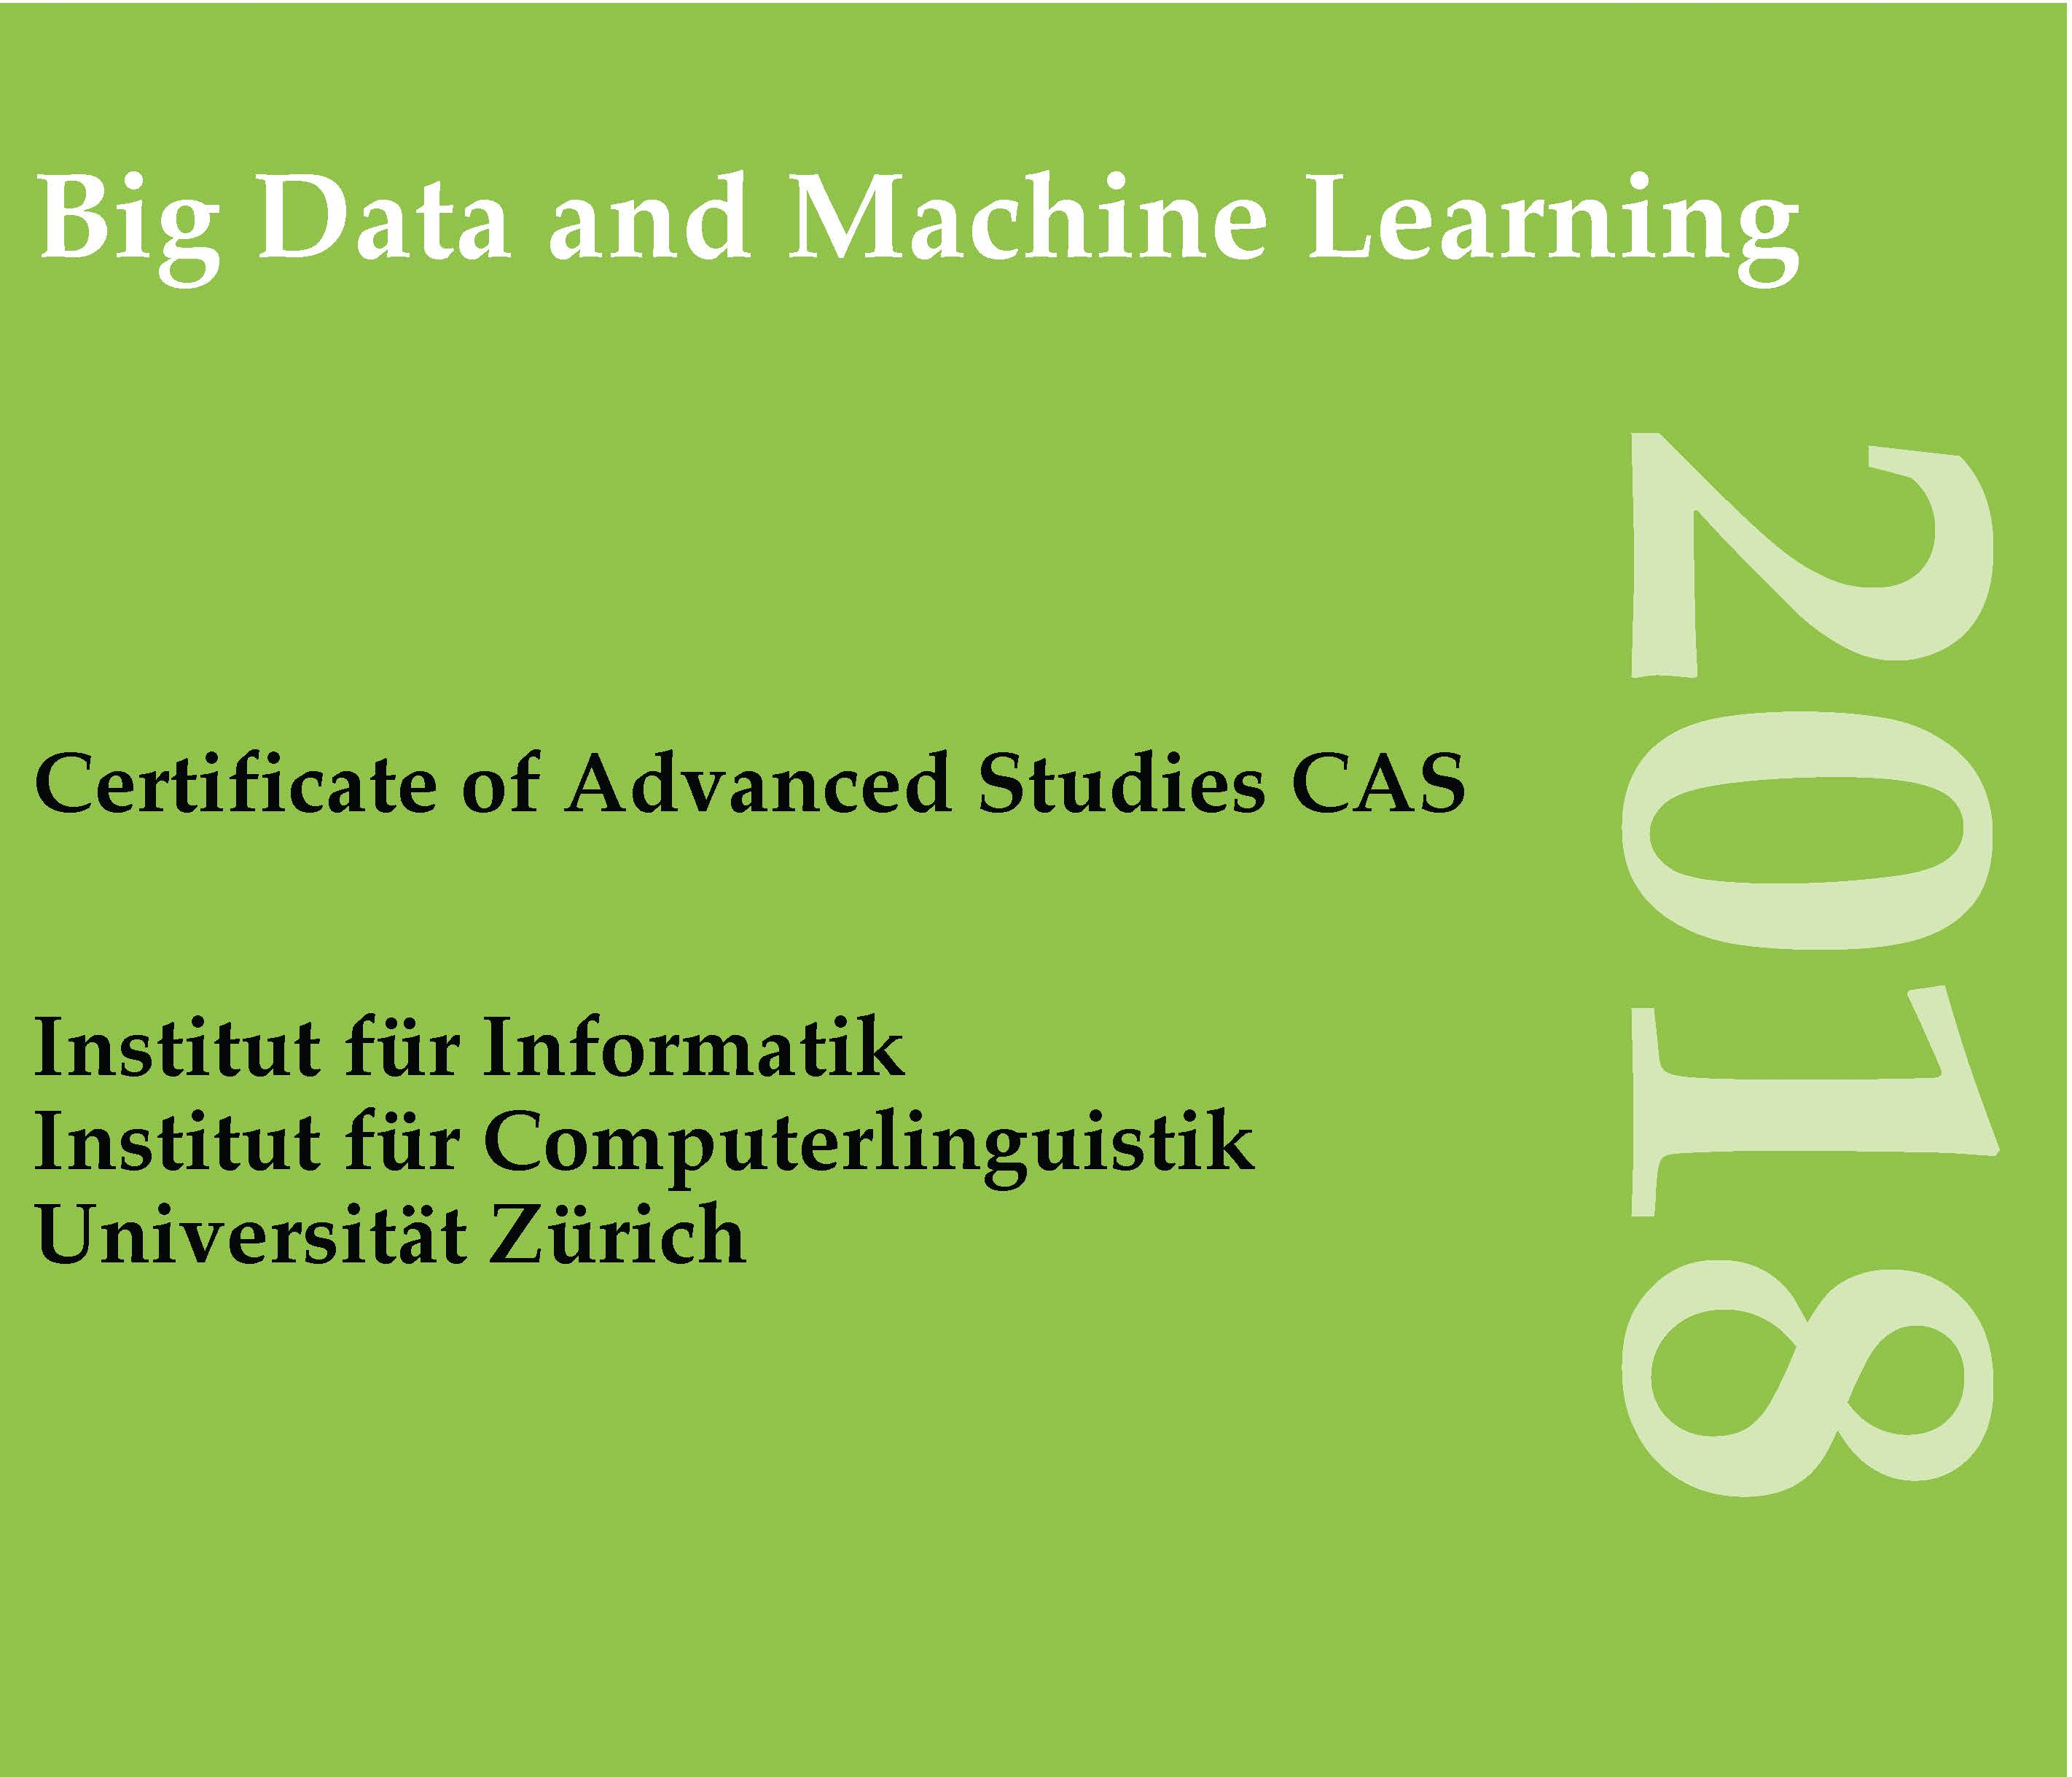 CAS in Big Data and Machine Learning